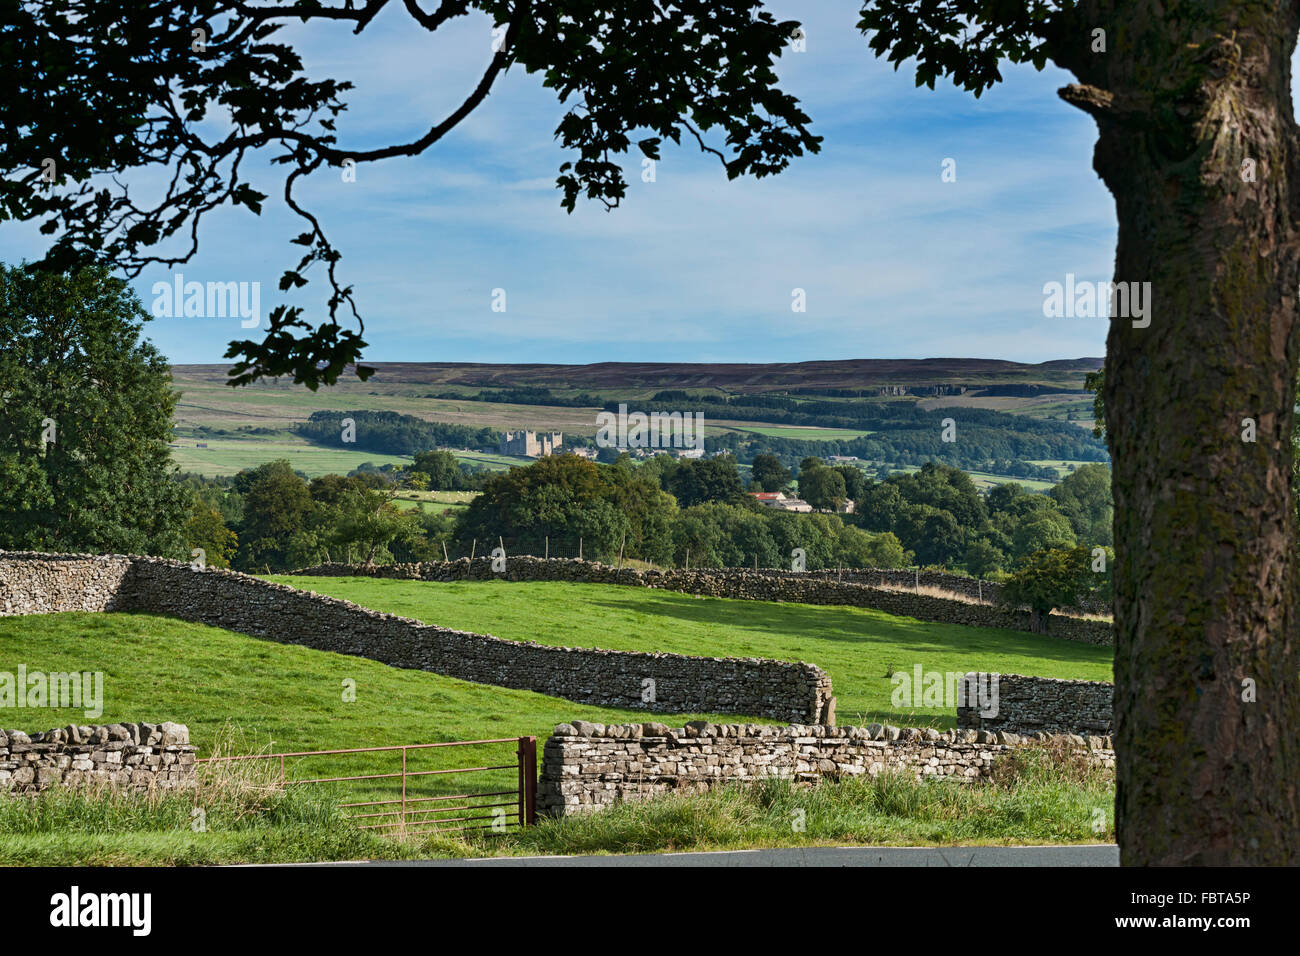 Looking across Wensleydale to Castle Bolton, North Yorkshire, England, UK - Stock Image